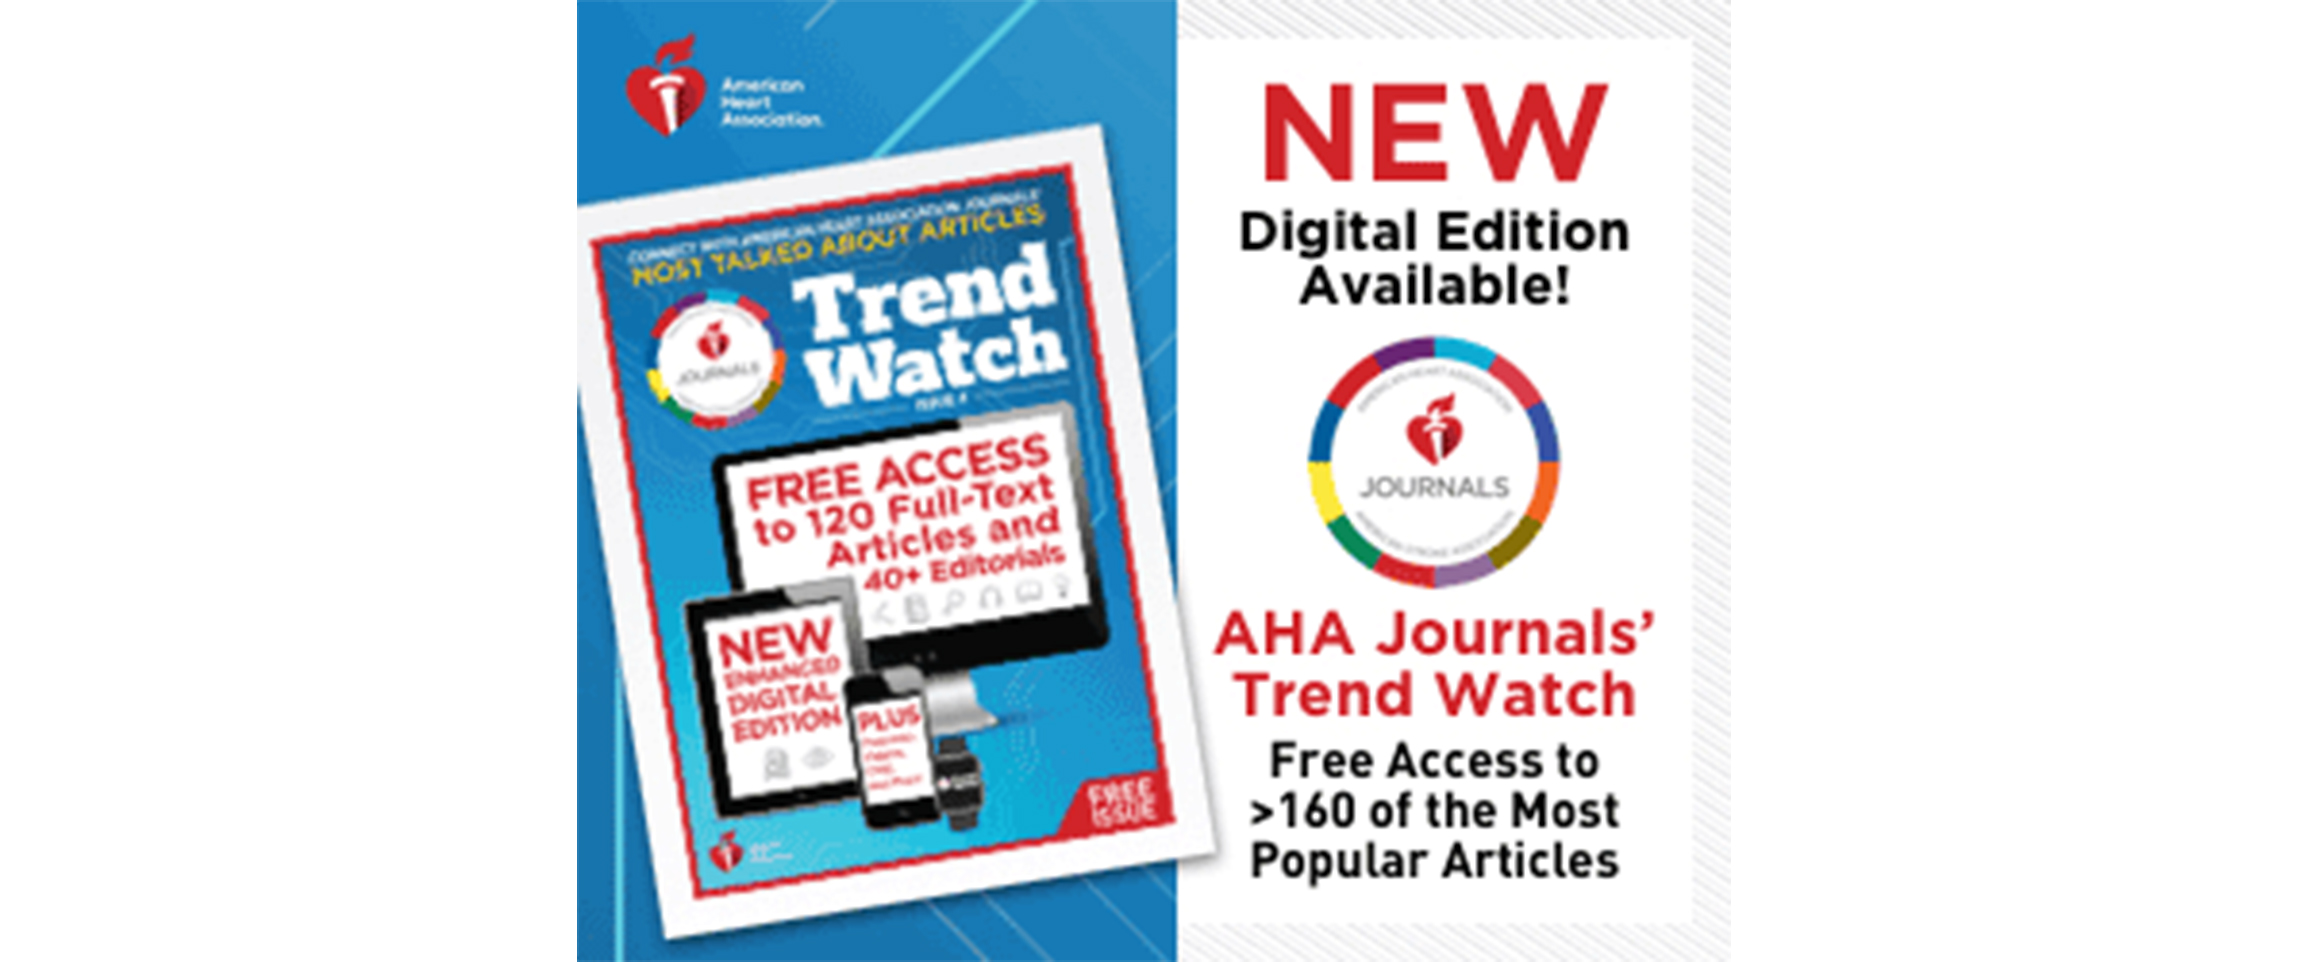 Home | AHA/ASA Journals